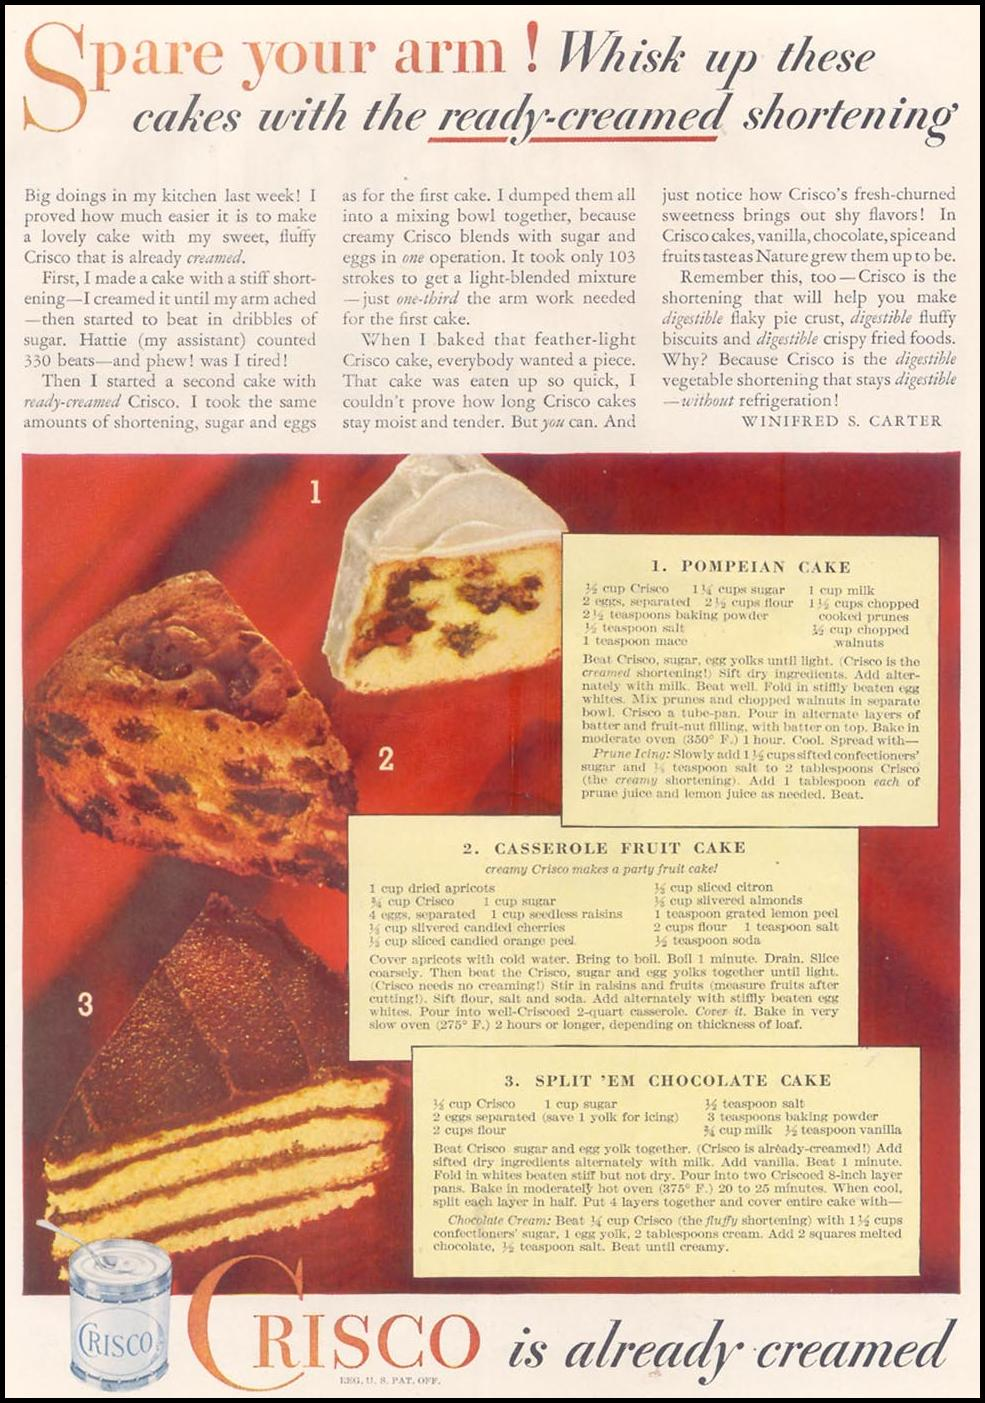 CRISCO VEGETABLE SHORTENING GOOD HOUSEKEEPING 11/01/1933